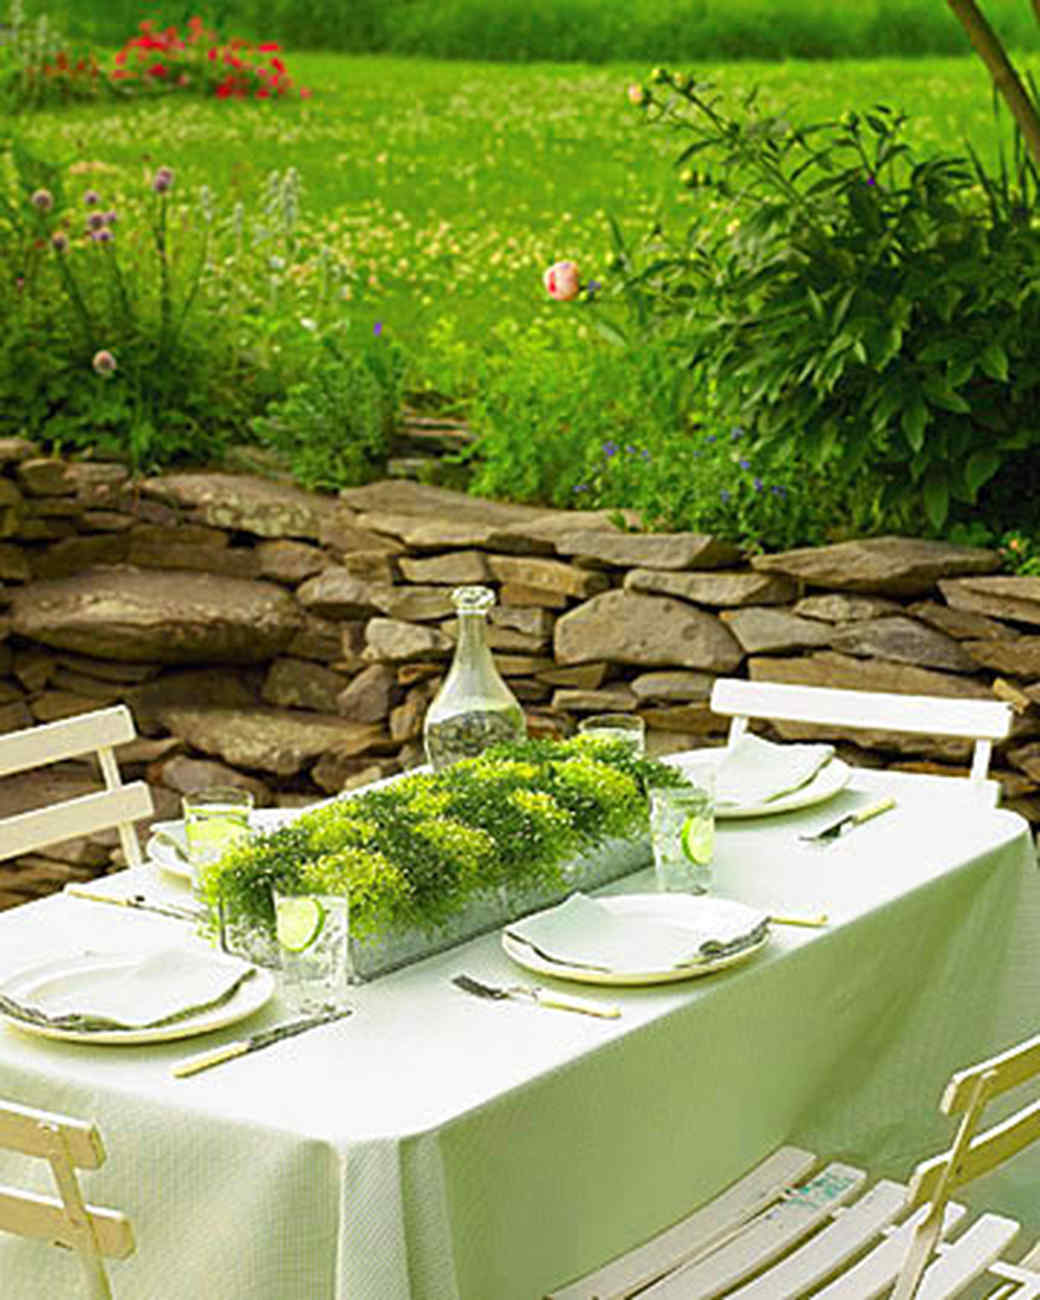 Garden party ideas martha stewart for Patio table centerpiece ideas